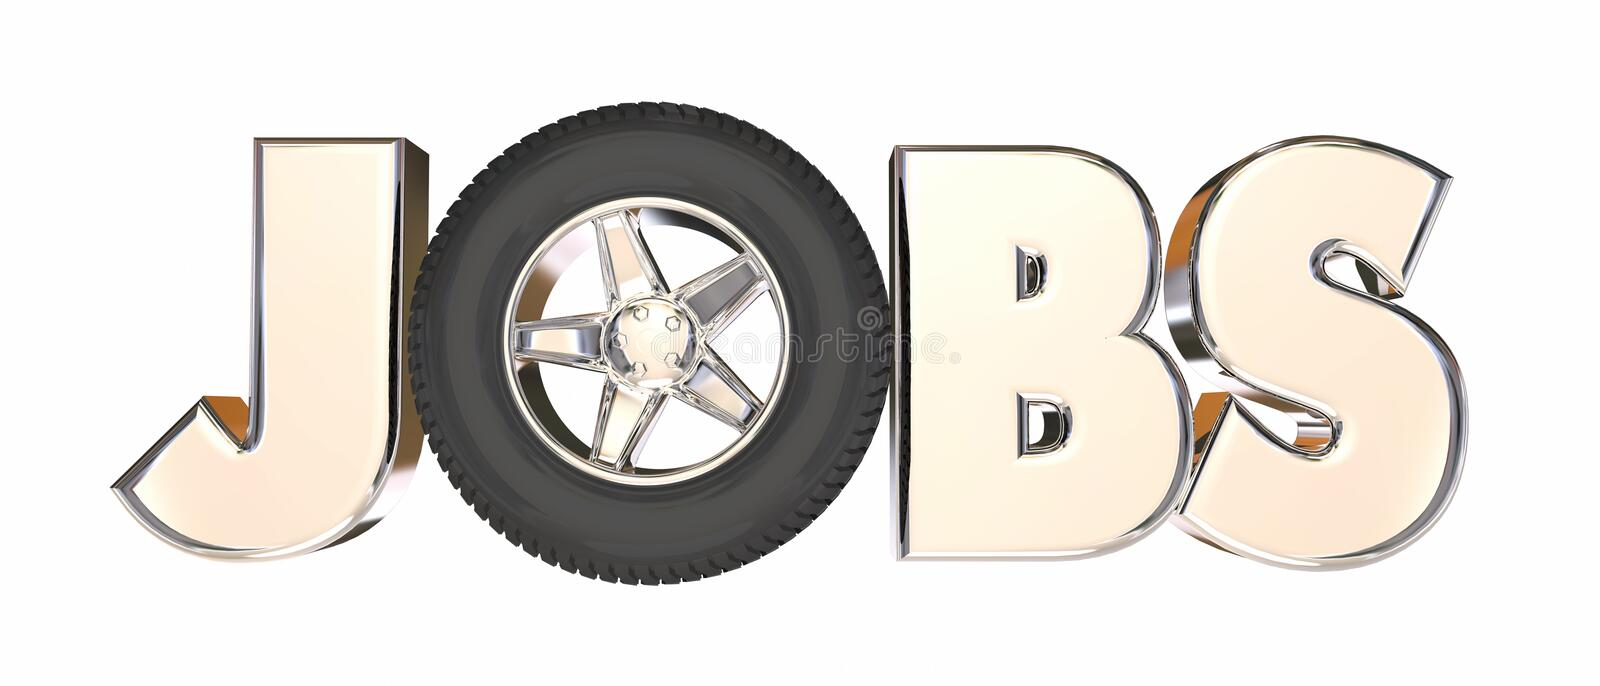 Jobs Automotive Trucking Career Wheels Word. 3d Illustration royalty free illustration